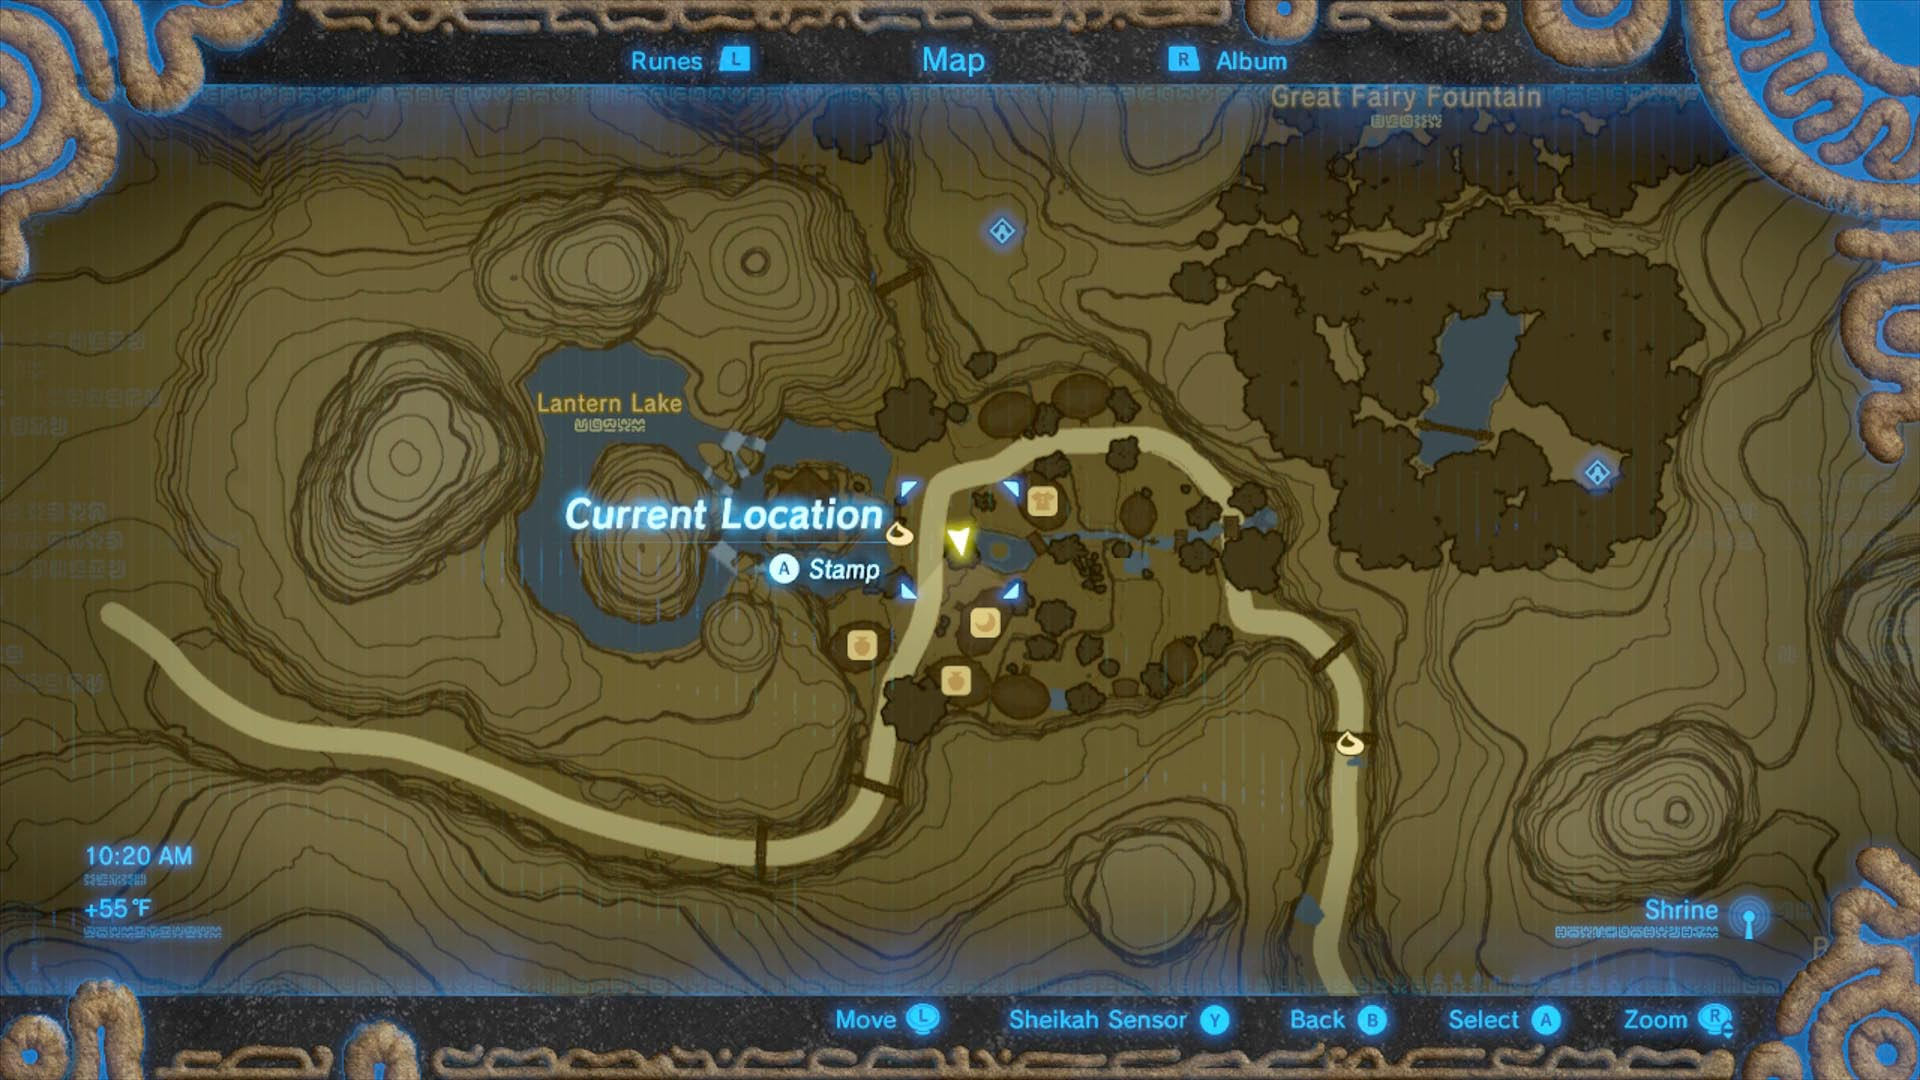 Flown the Coop side quest